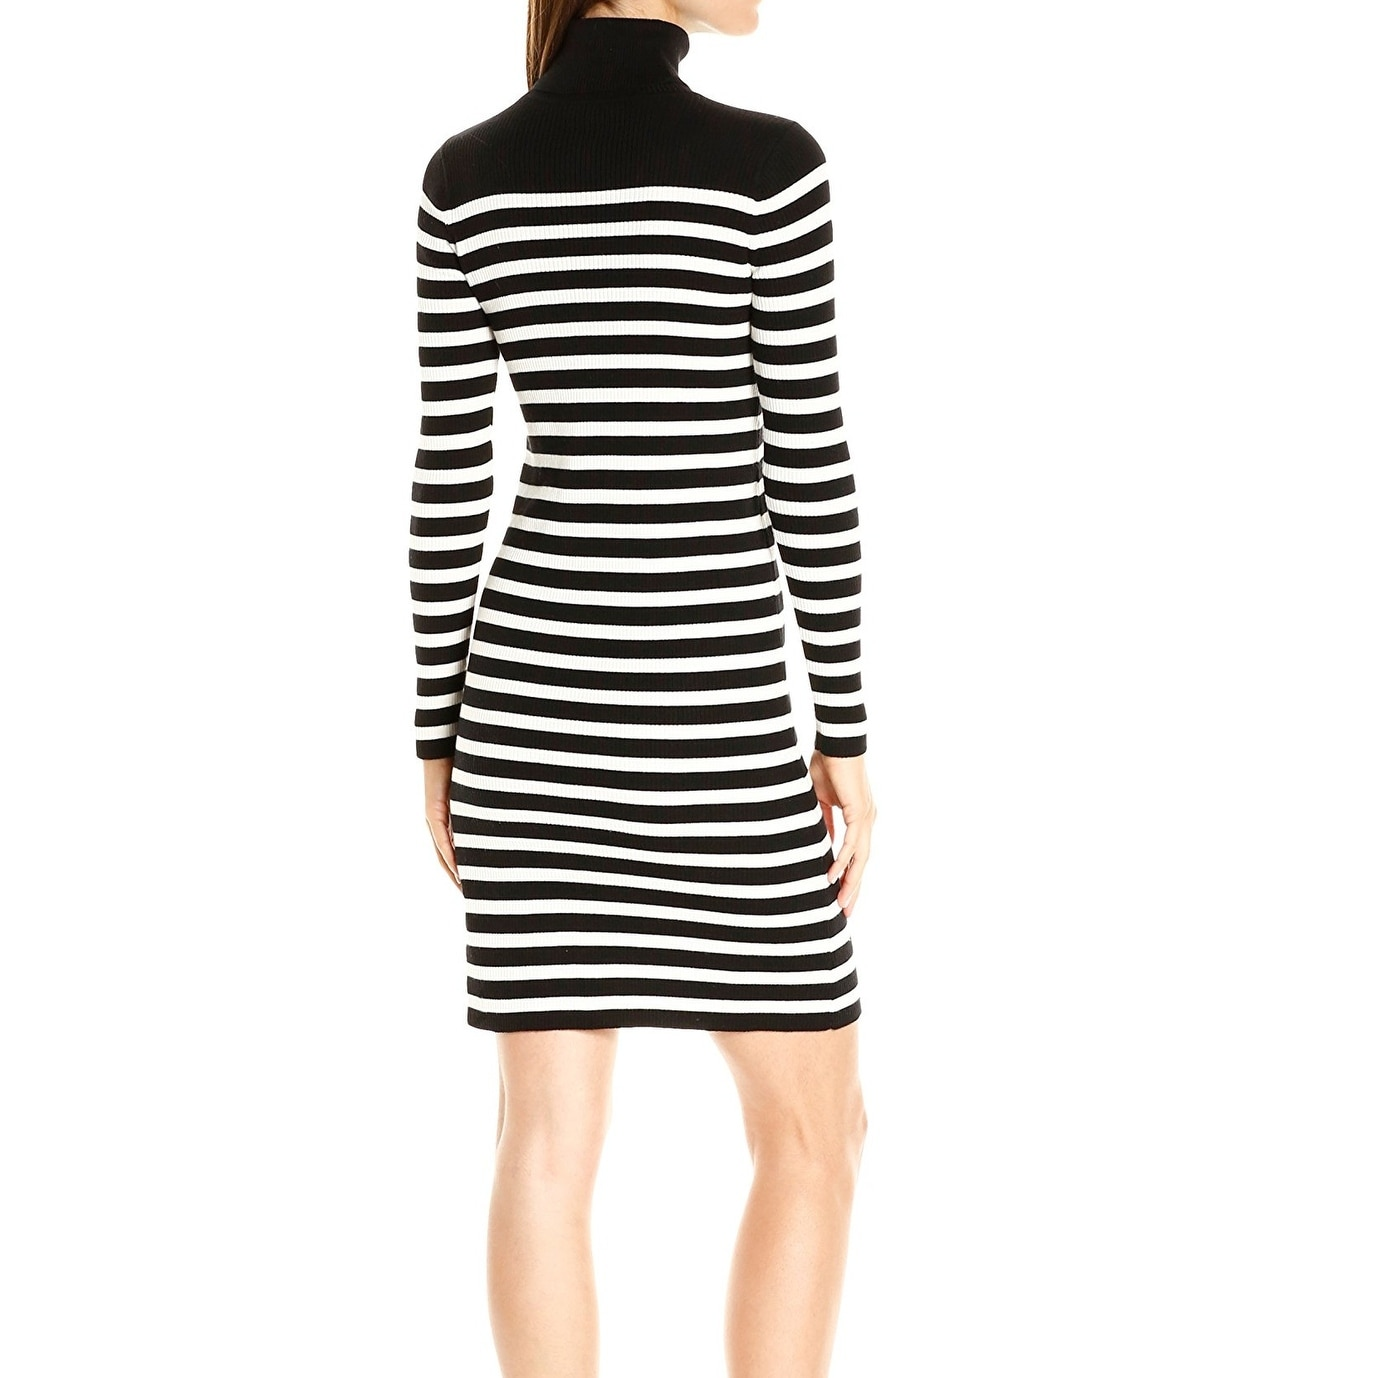 838a5475d20 Shop Vince Camuto NEW Black Womens Size XL Striped Turtleneck Sweater Dress  - Free Shipping On Orders Over  45 - Overstock - 18358554